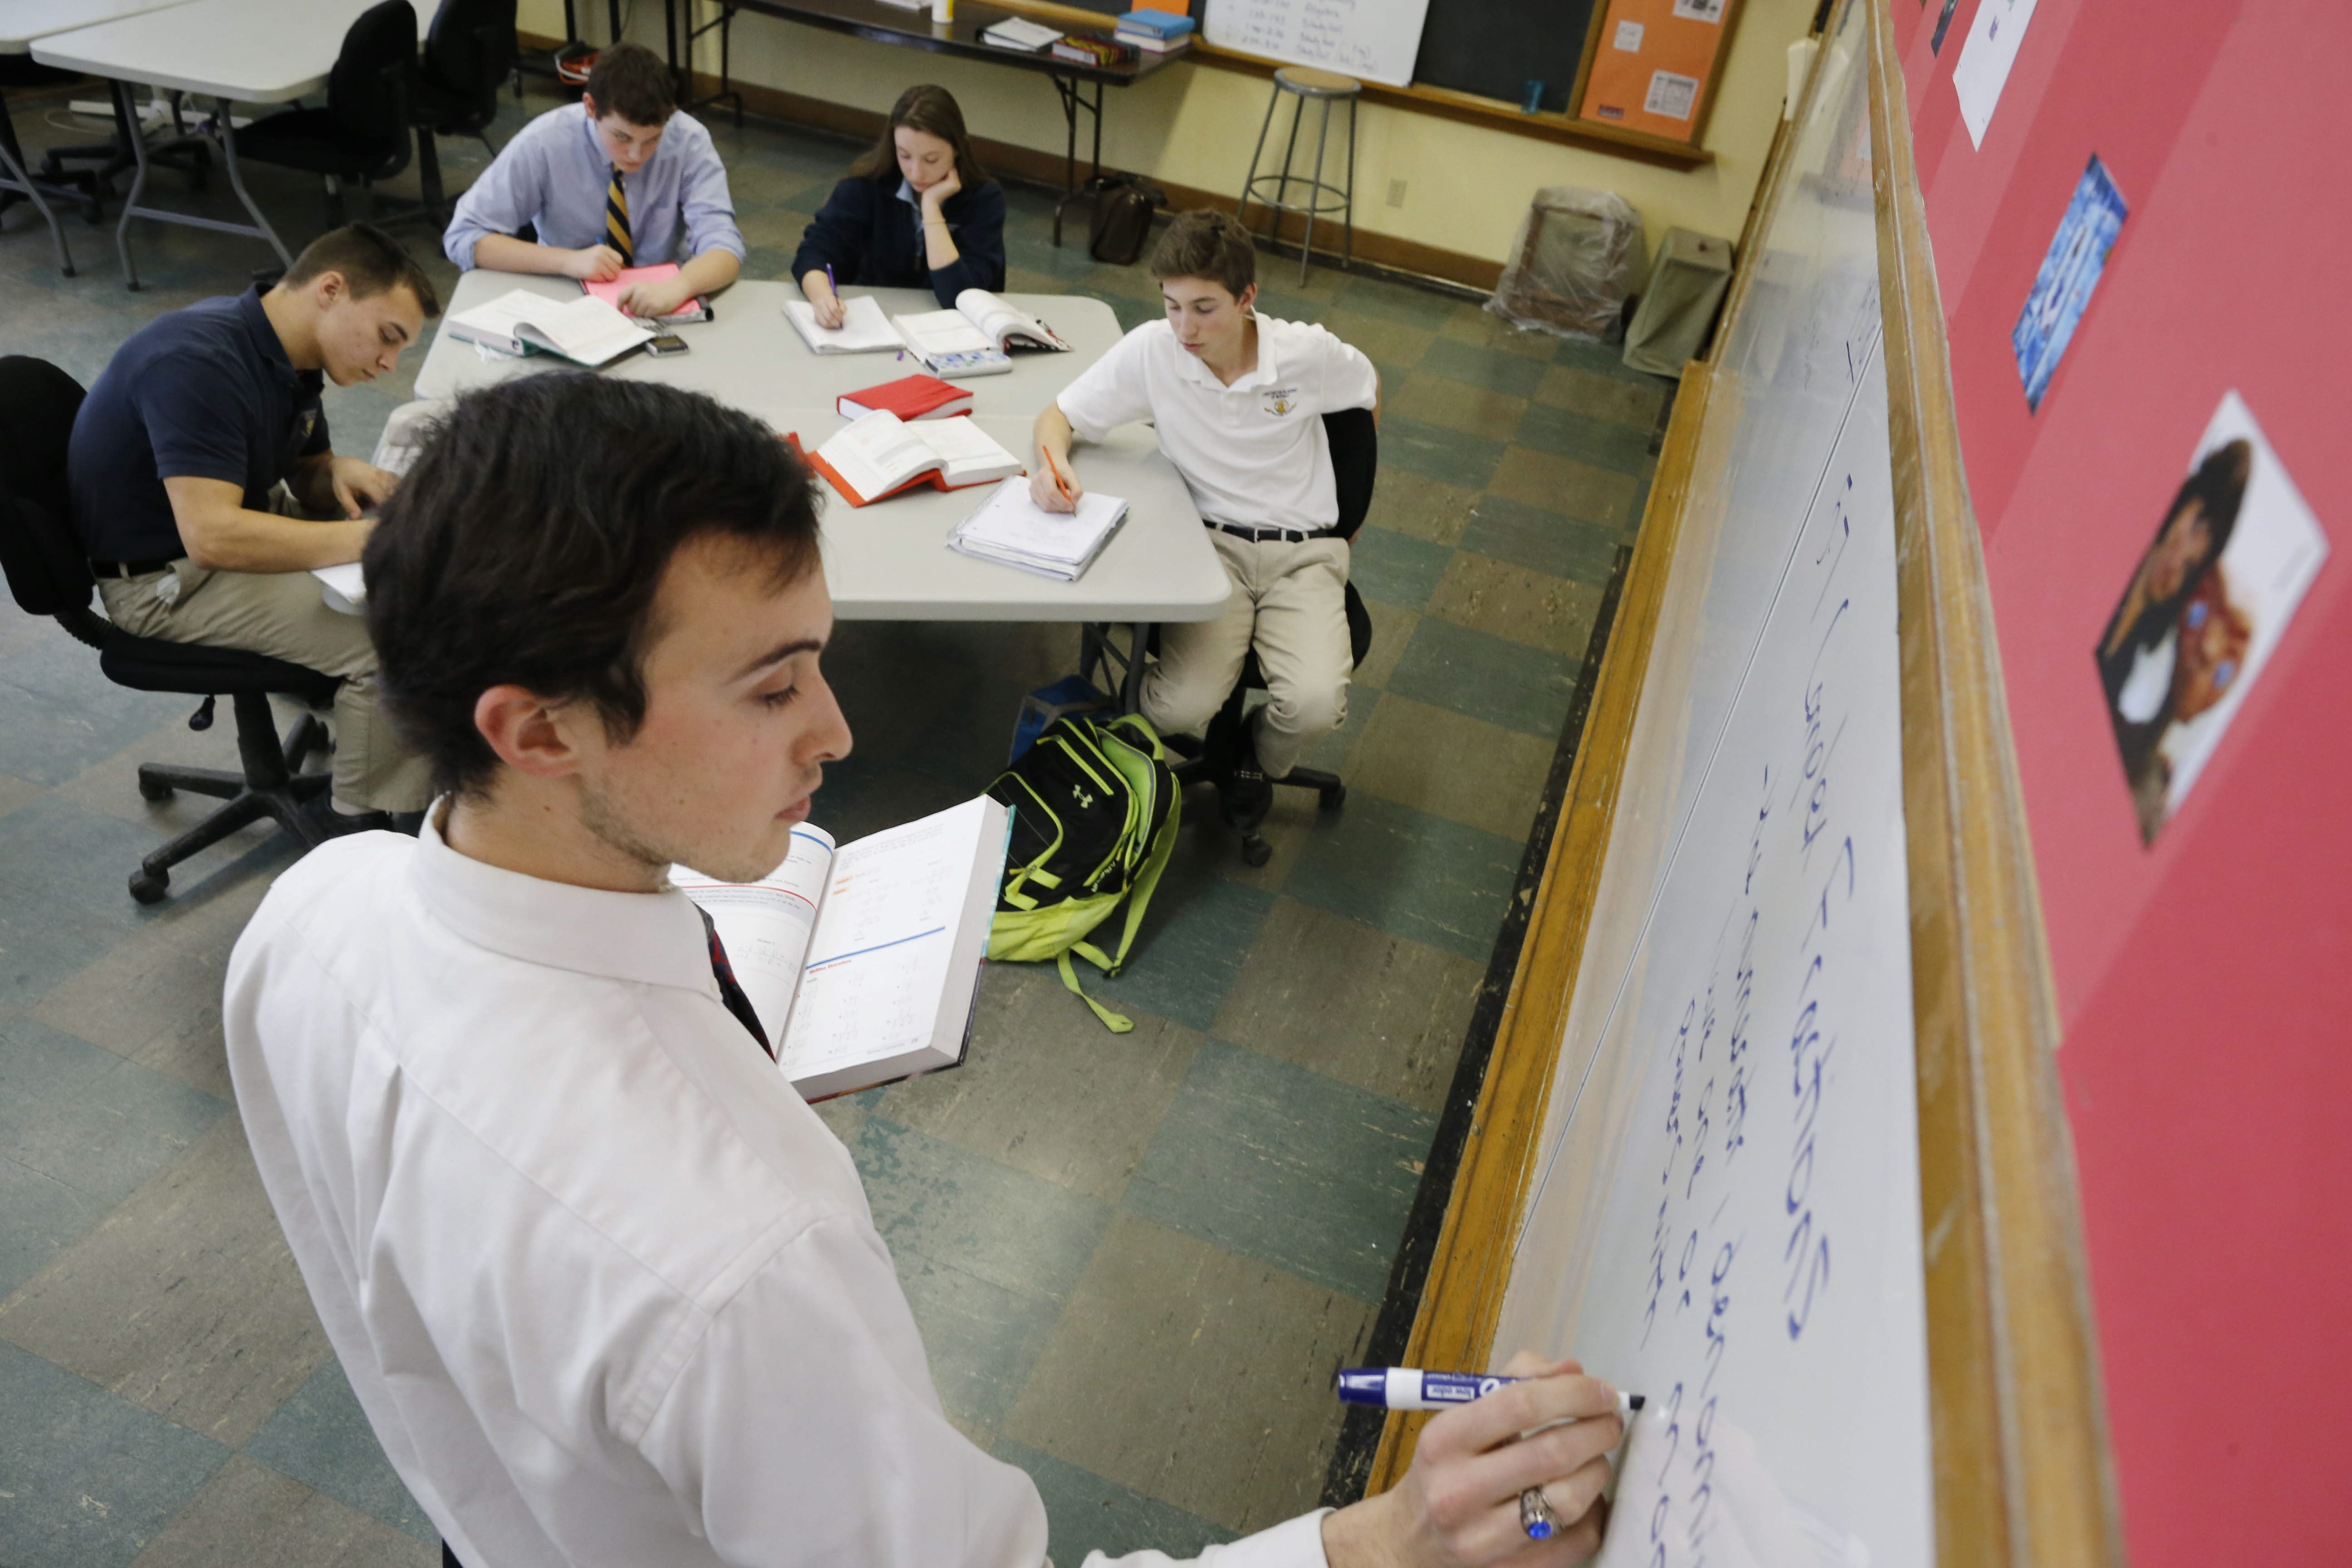 Andrew Suchyna teaches trigonometry to a class of four at the Chesterton Academy of Buffalo, located in a building that previously housed a Catholic school in West Seneca. The normal class size is seven.